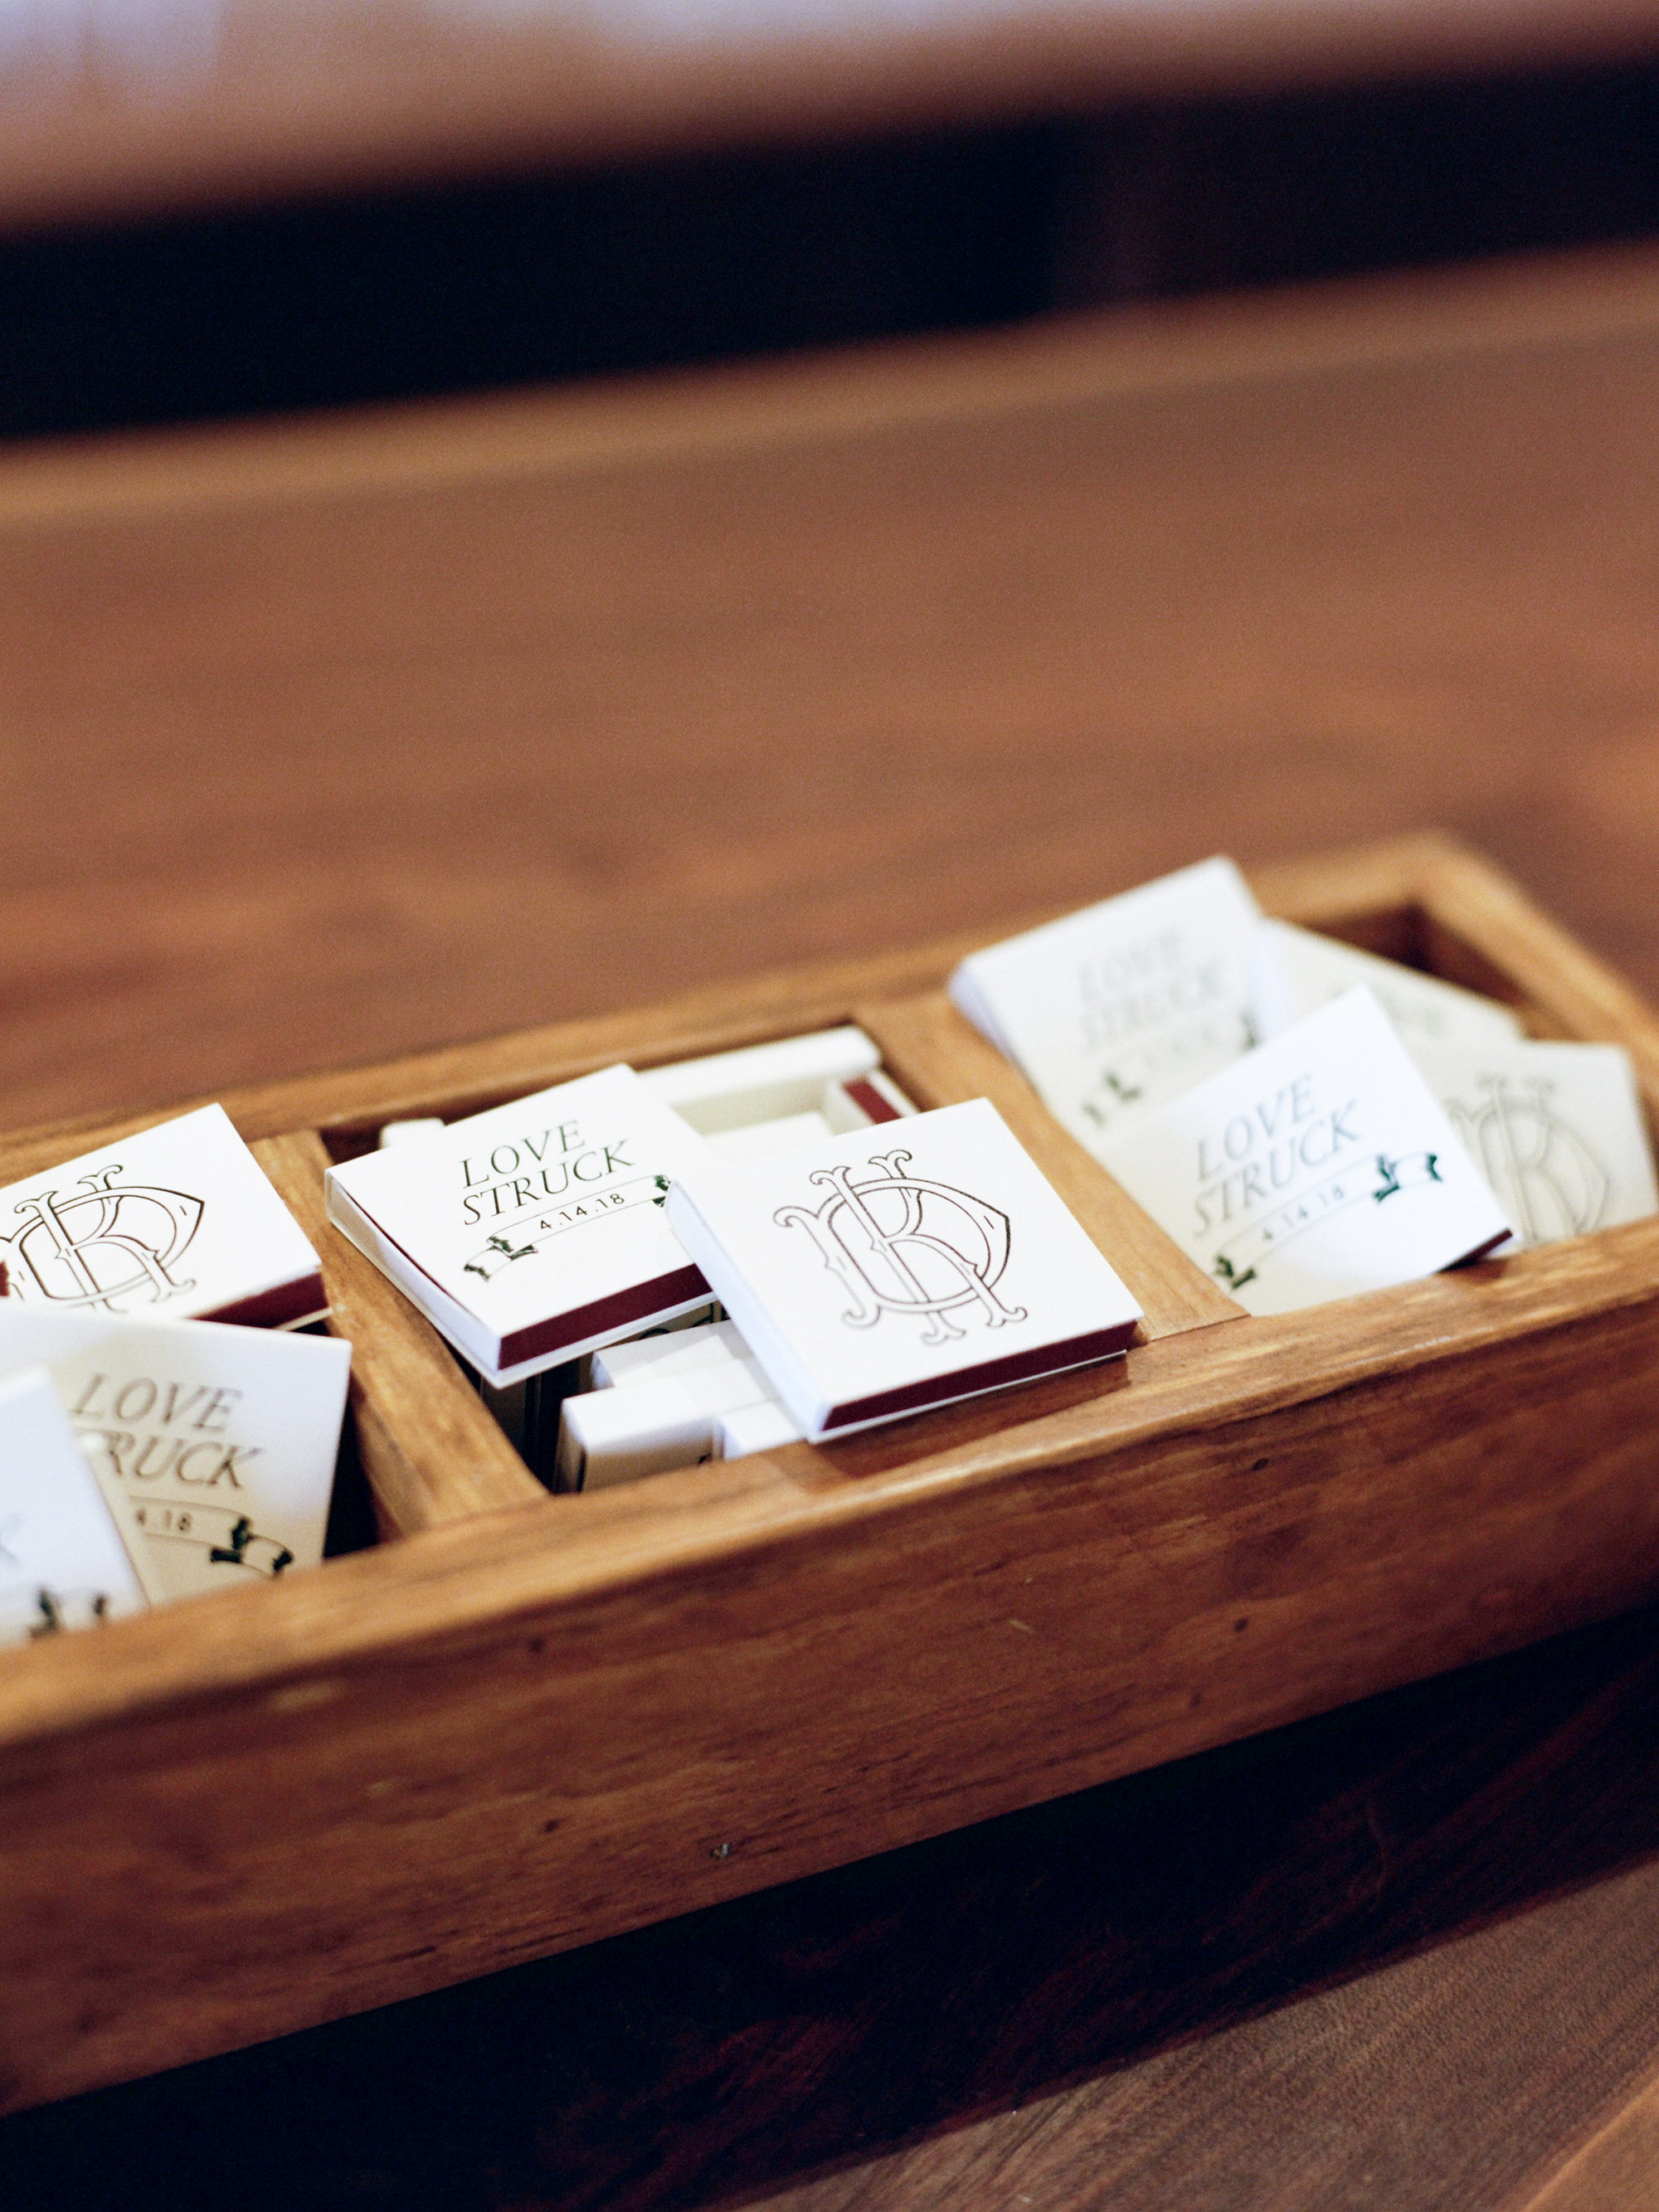 kelly drew new jersey matches in wooden box